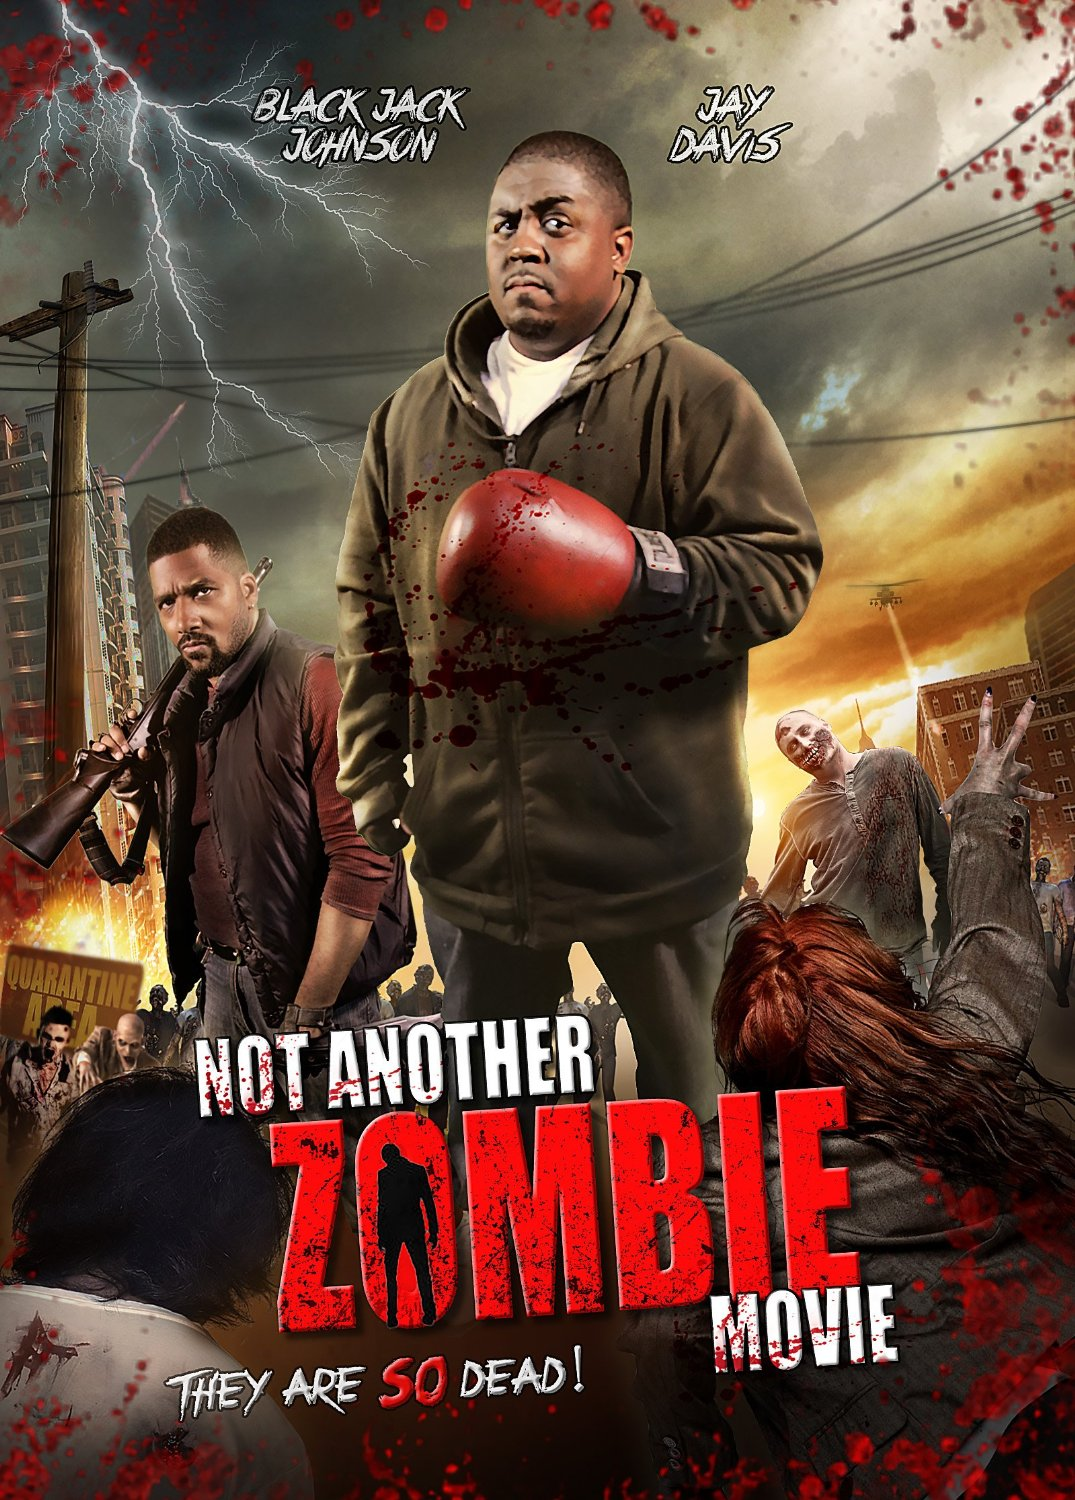 zombie movie another movies horror dead raising conjuring cain 13th blu include releases ray dvd september blackhorrormovies